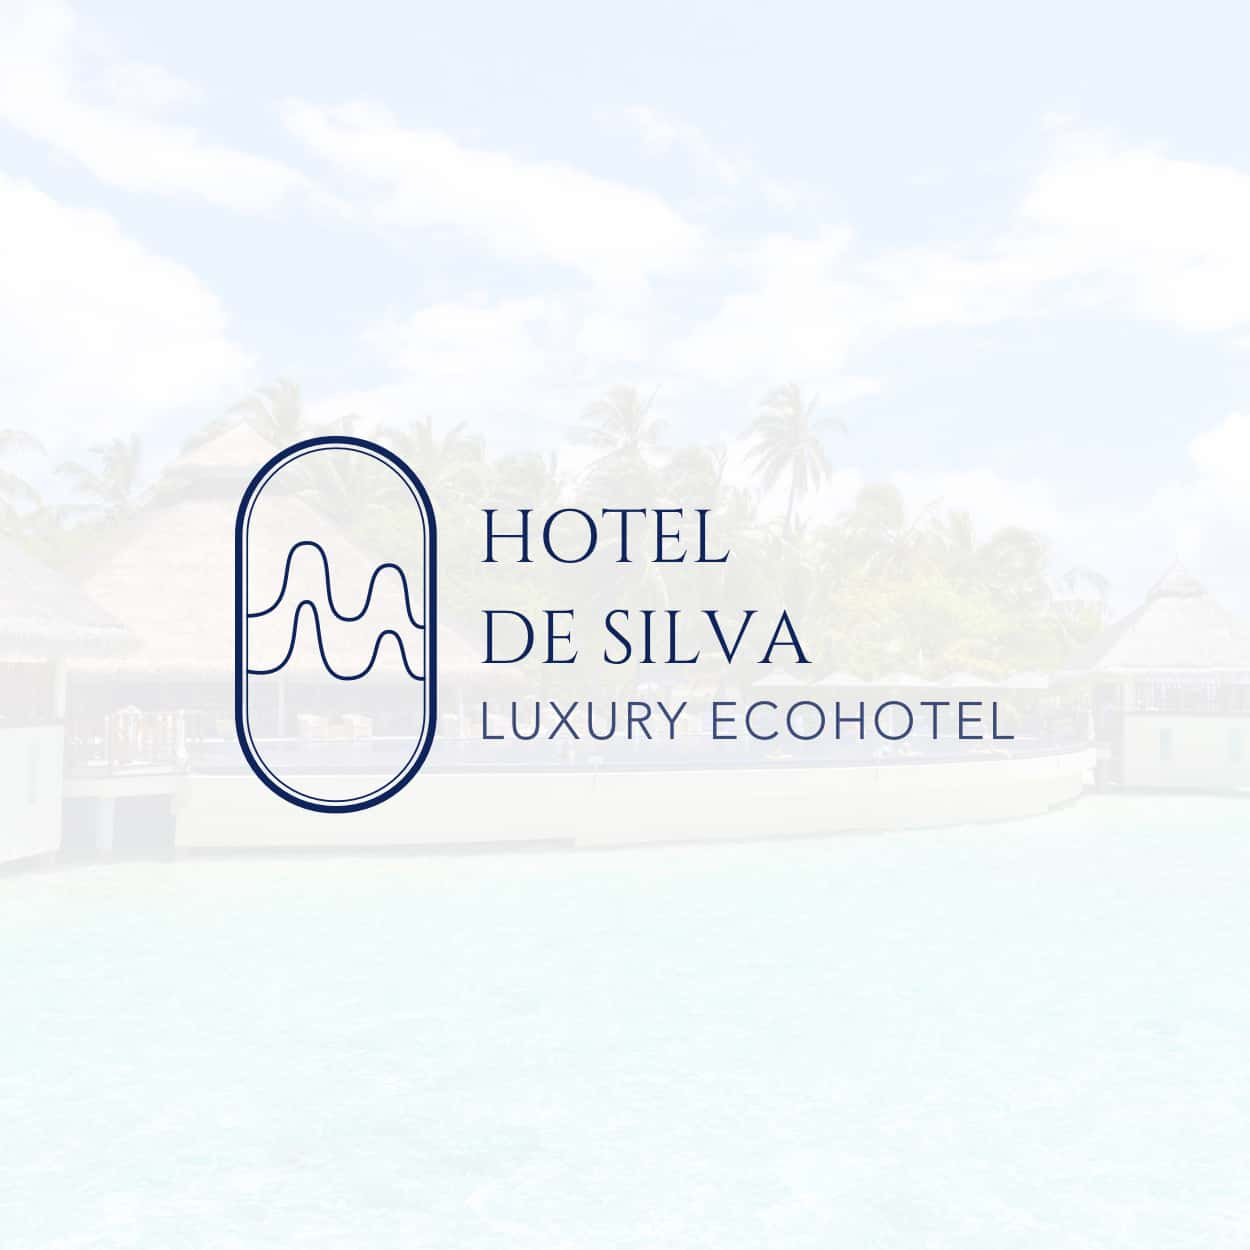 Let's Design Nadia Ornstein - Hotel De Silva Website Design